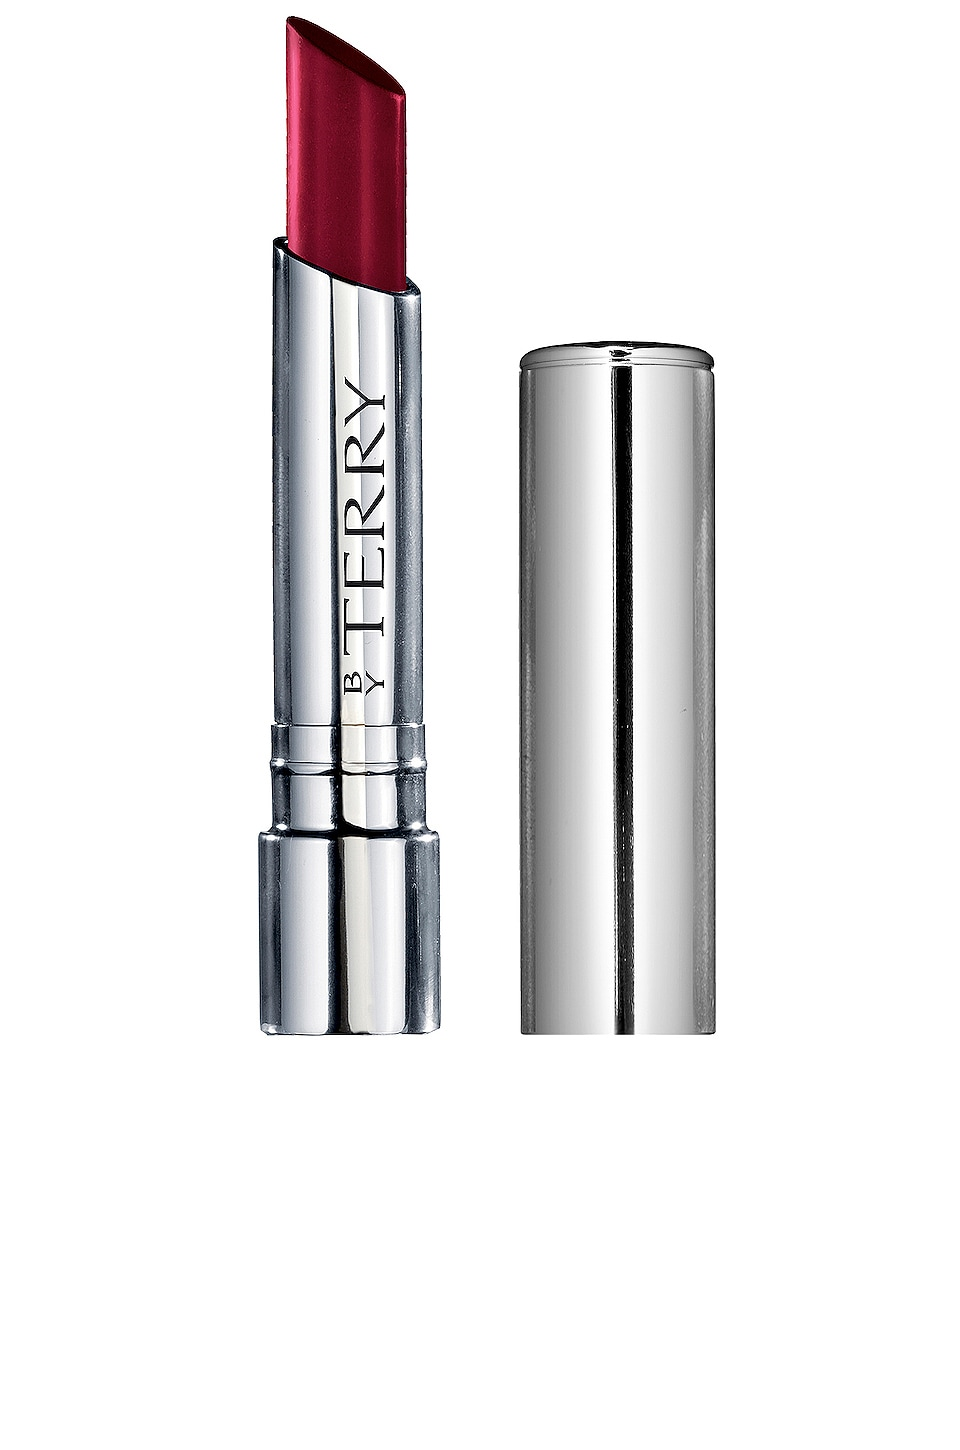 By Terry Hyaluronic Sheer Rouge Hydra-Balm Lipstick in Fatal Shot